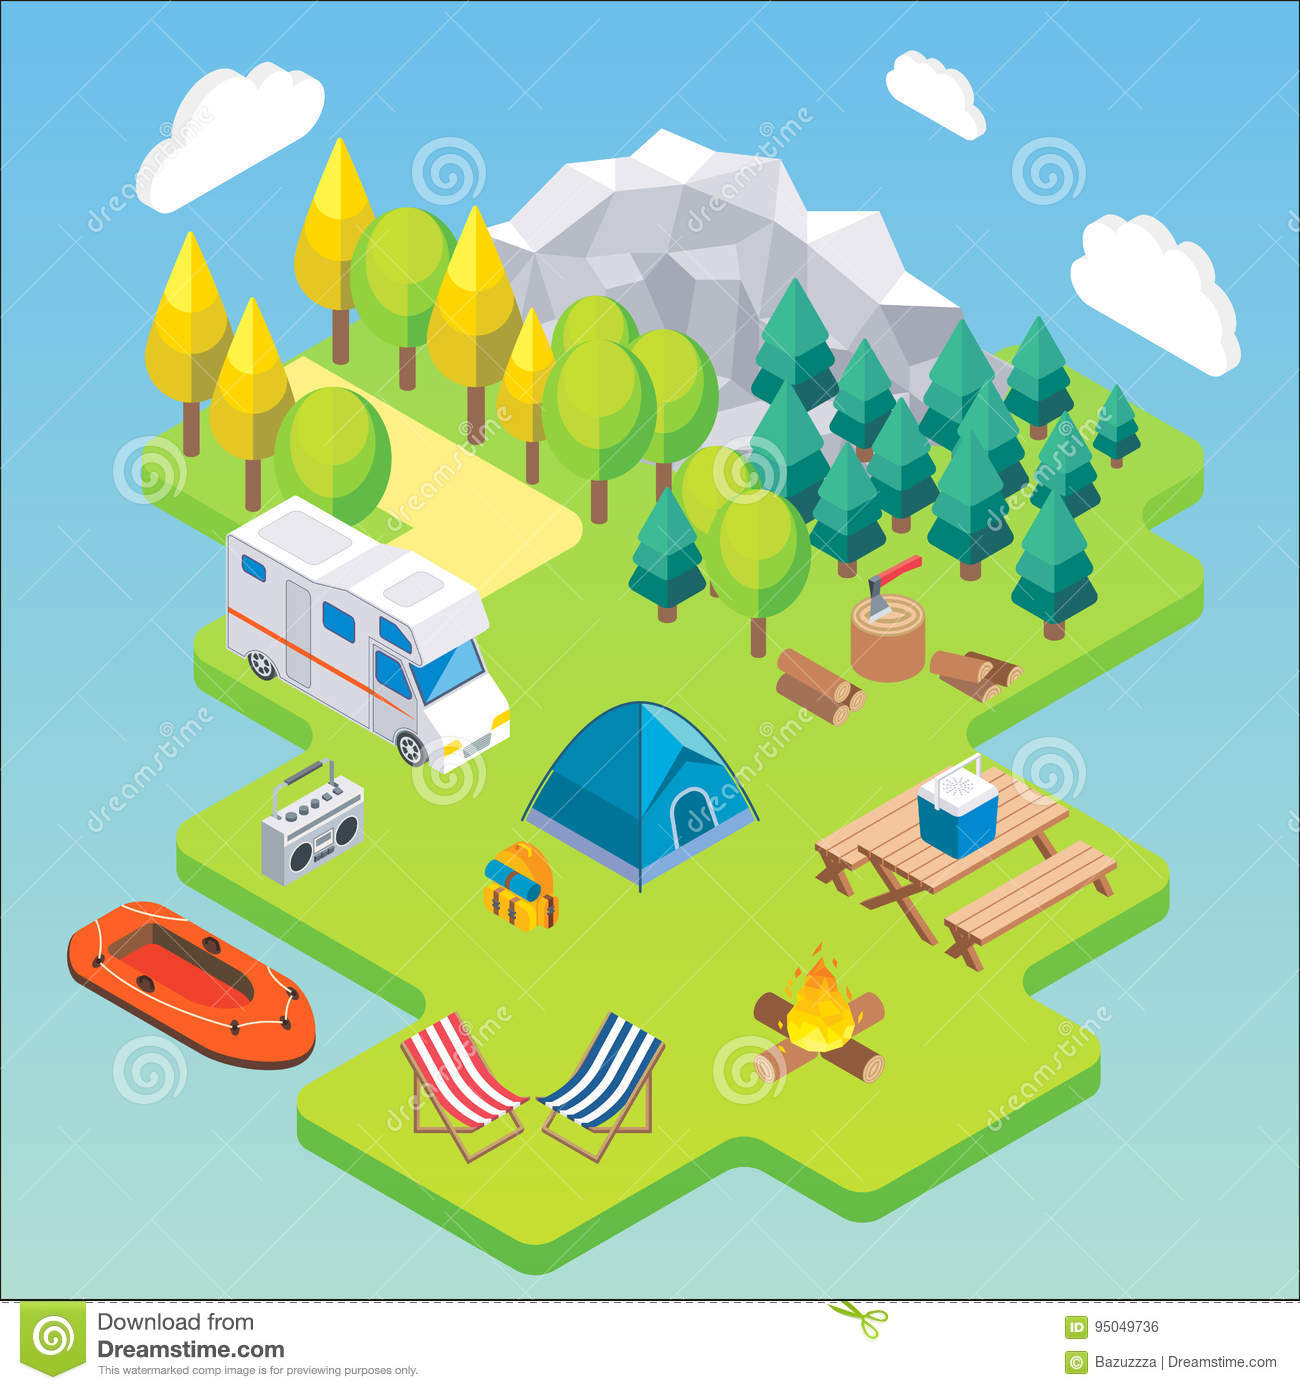 Camping isometric concept. Vector illustration in flat 3d style. Outdoor camp activity. Travel by camper in mountains